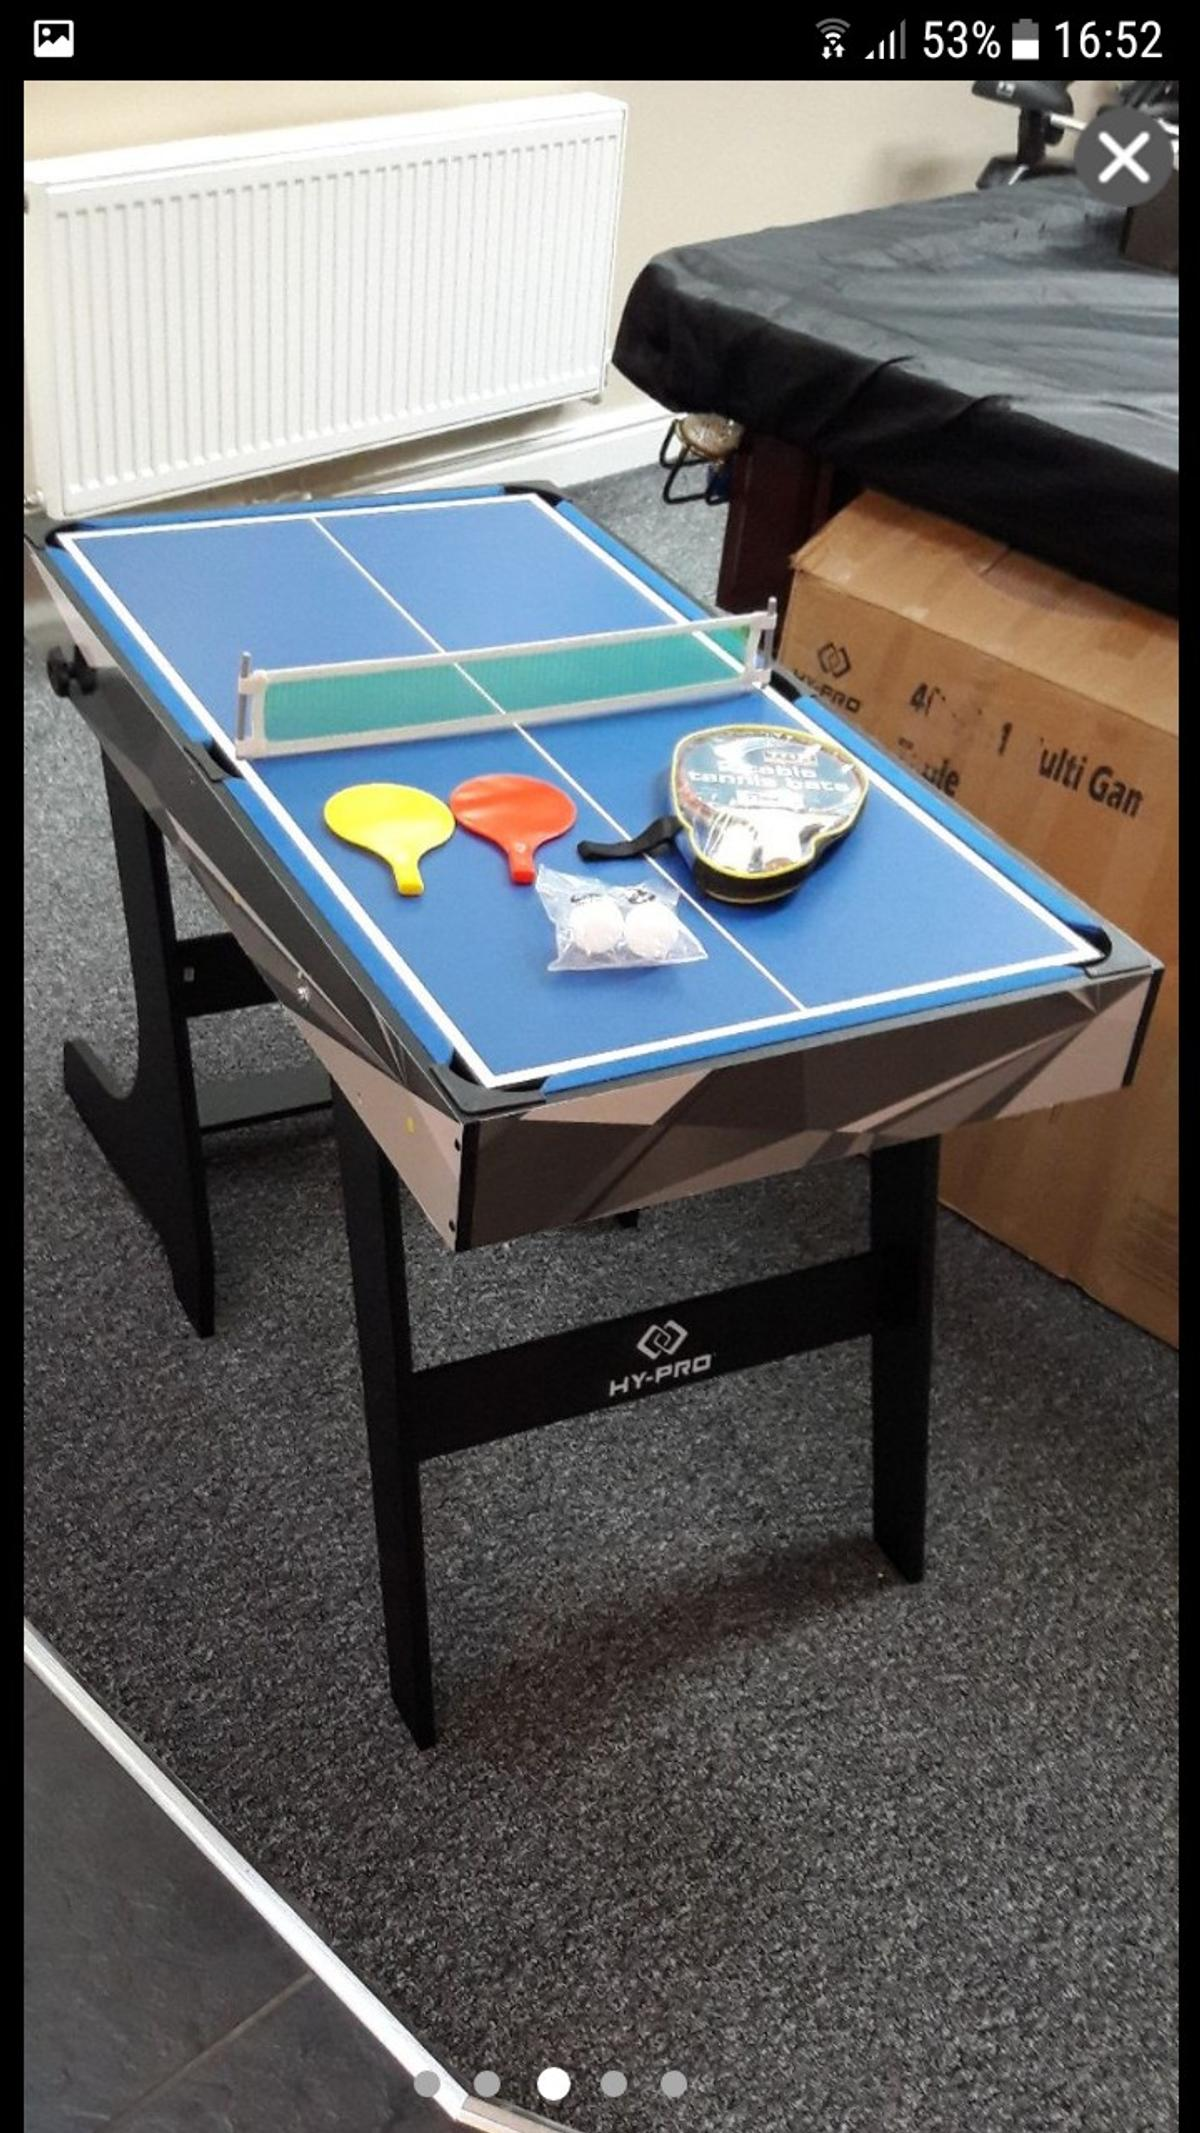 - 4 IN 1 4FT FOLDING MULTI GAMES TABLE In M41 Trafford For £45.00